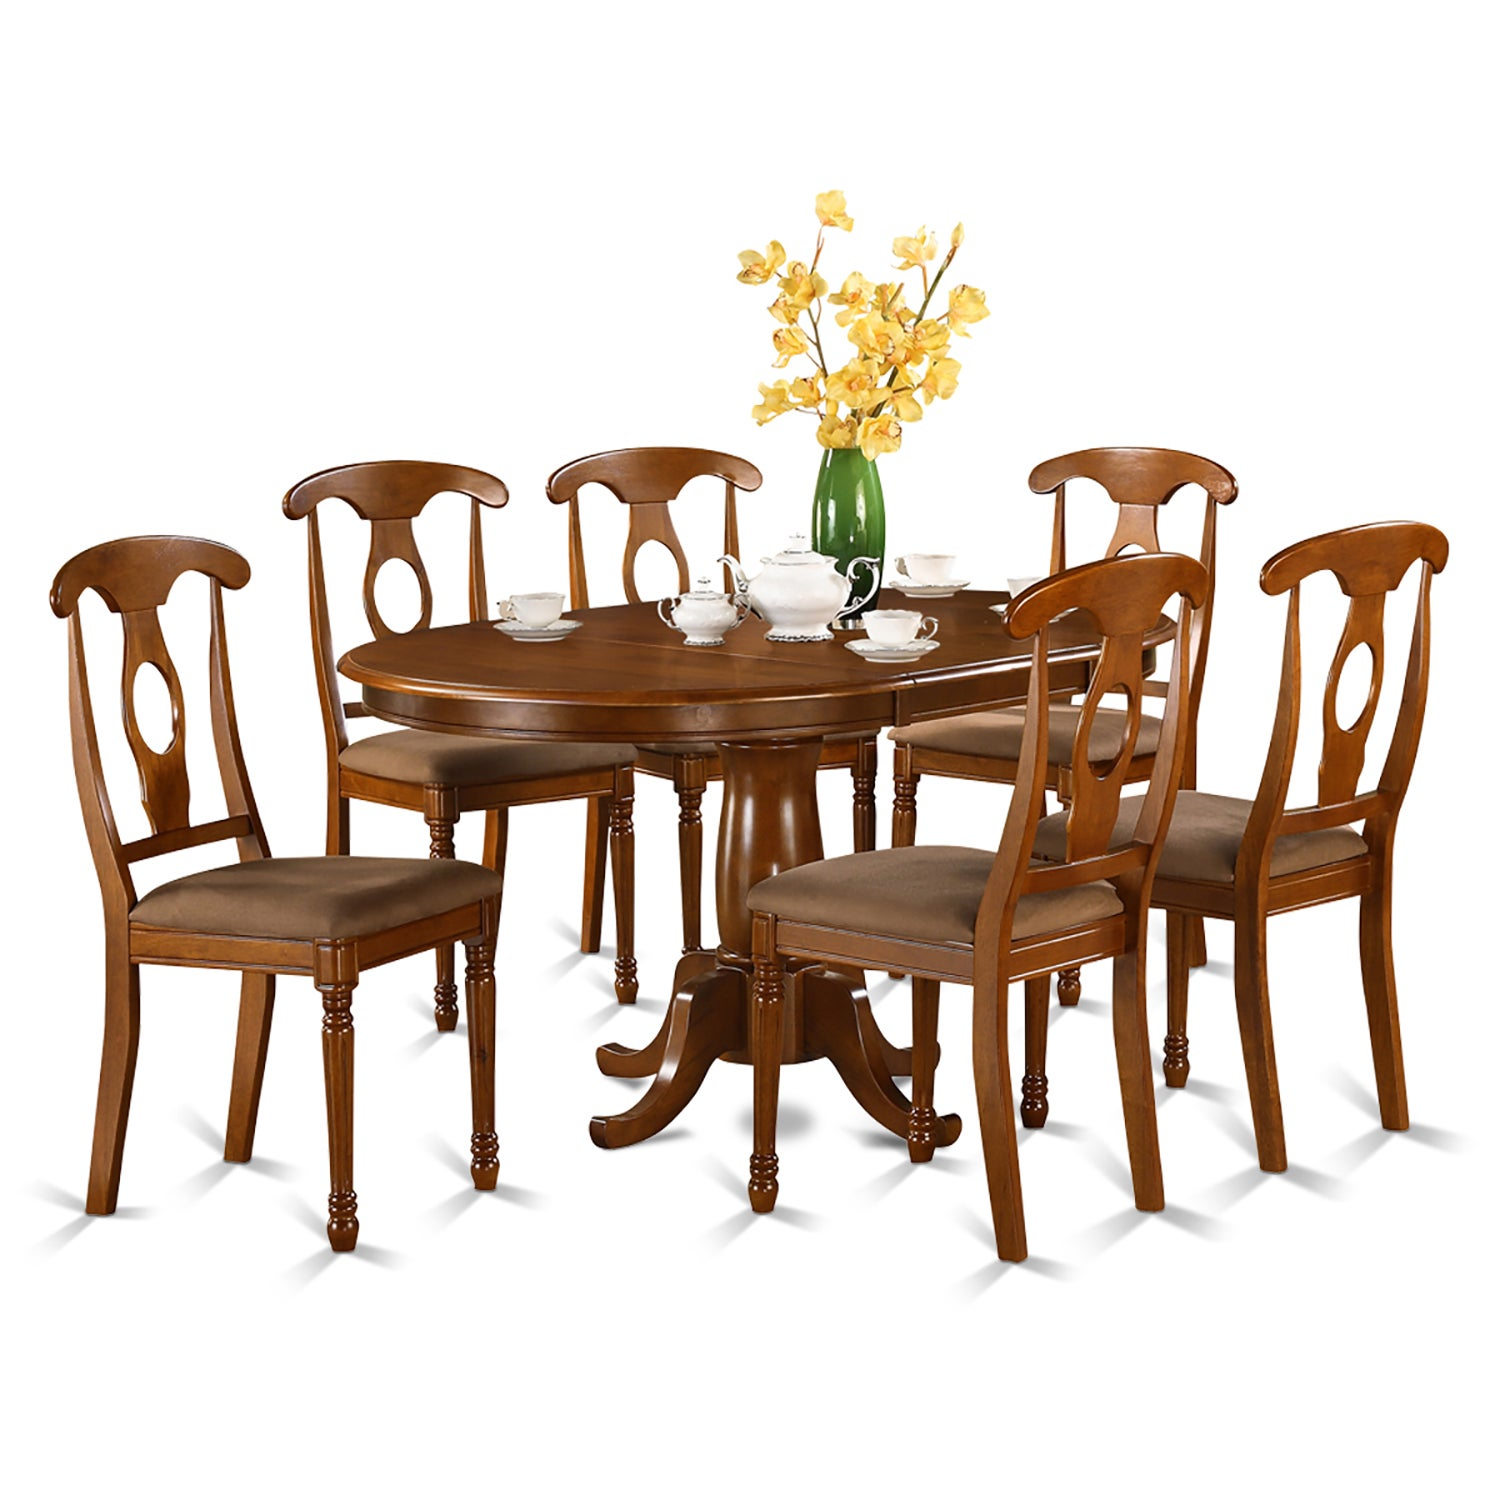 7 Piece And Oval Dining Table With Leaf 6 Chairs Free Shipping Today 10296473